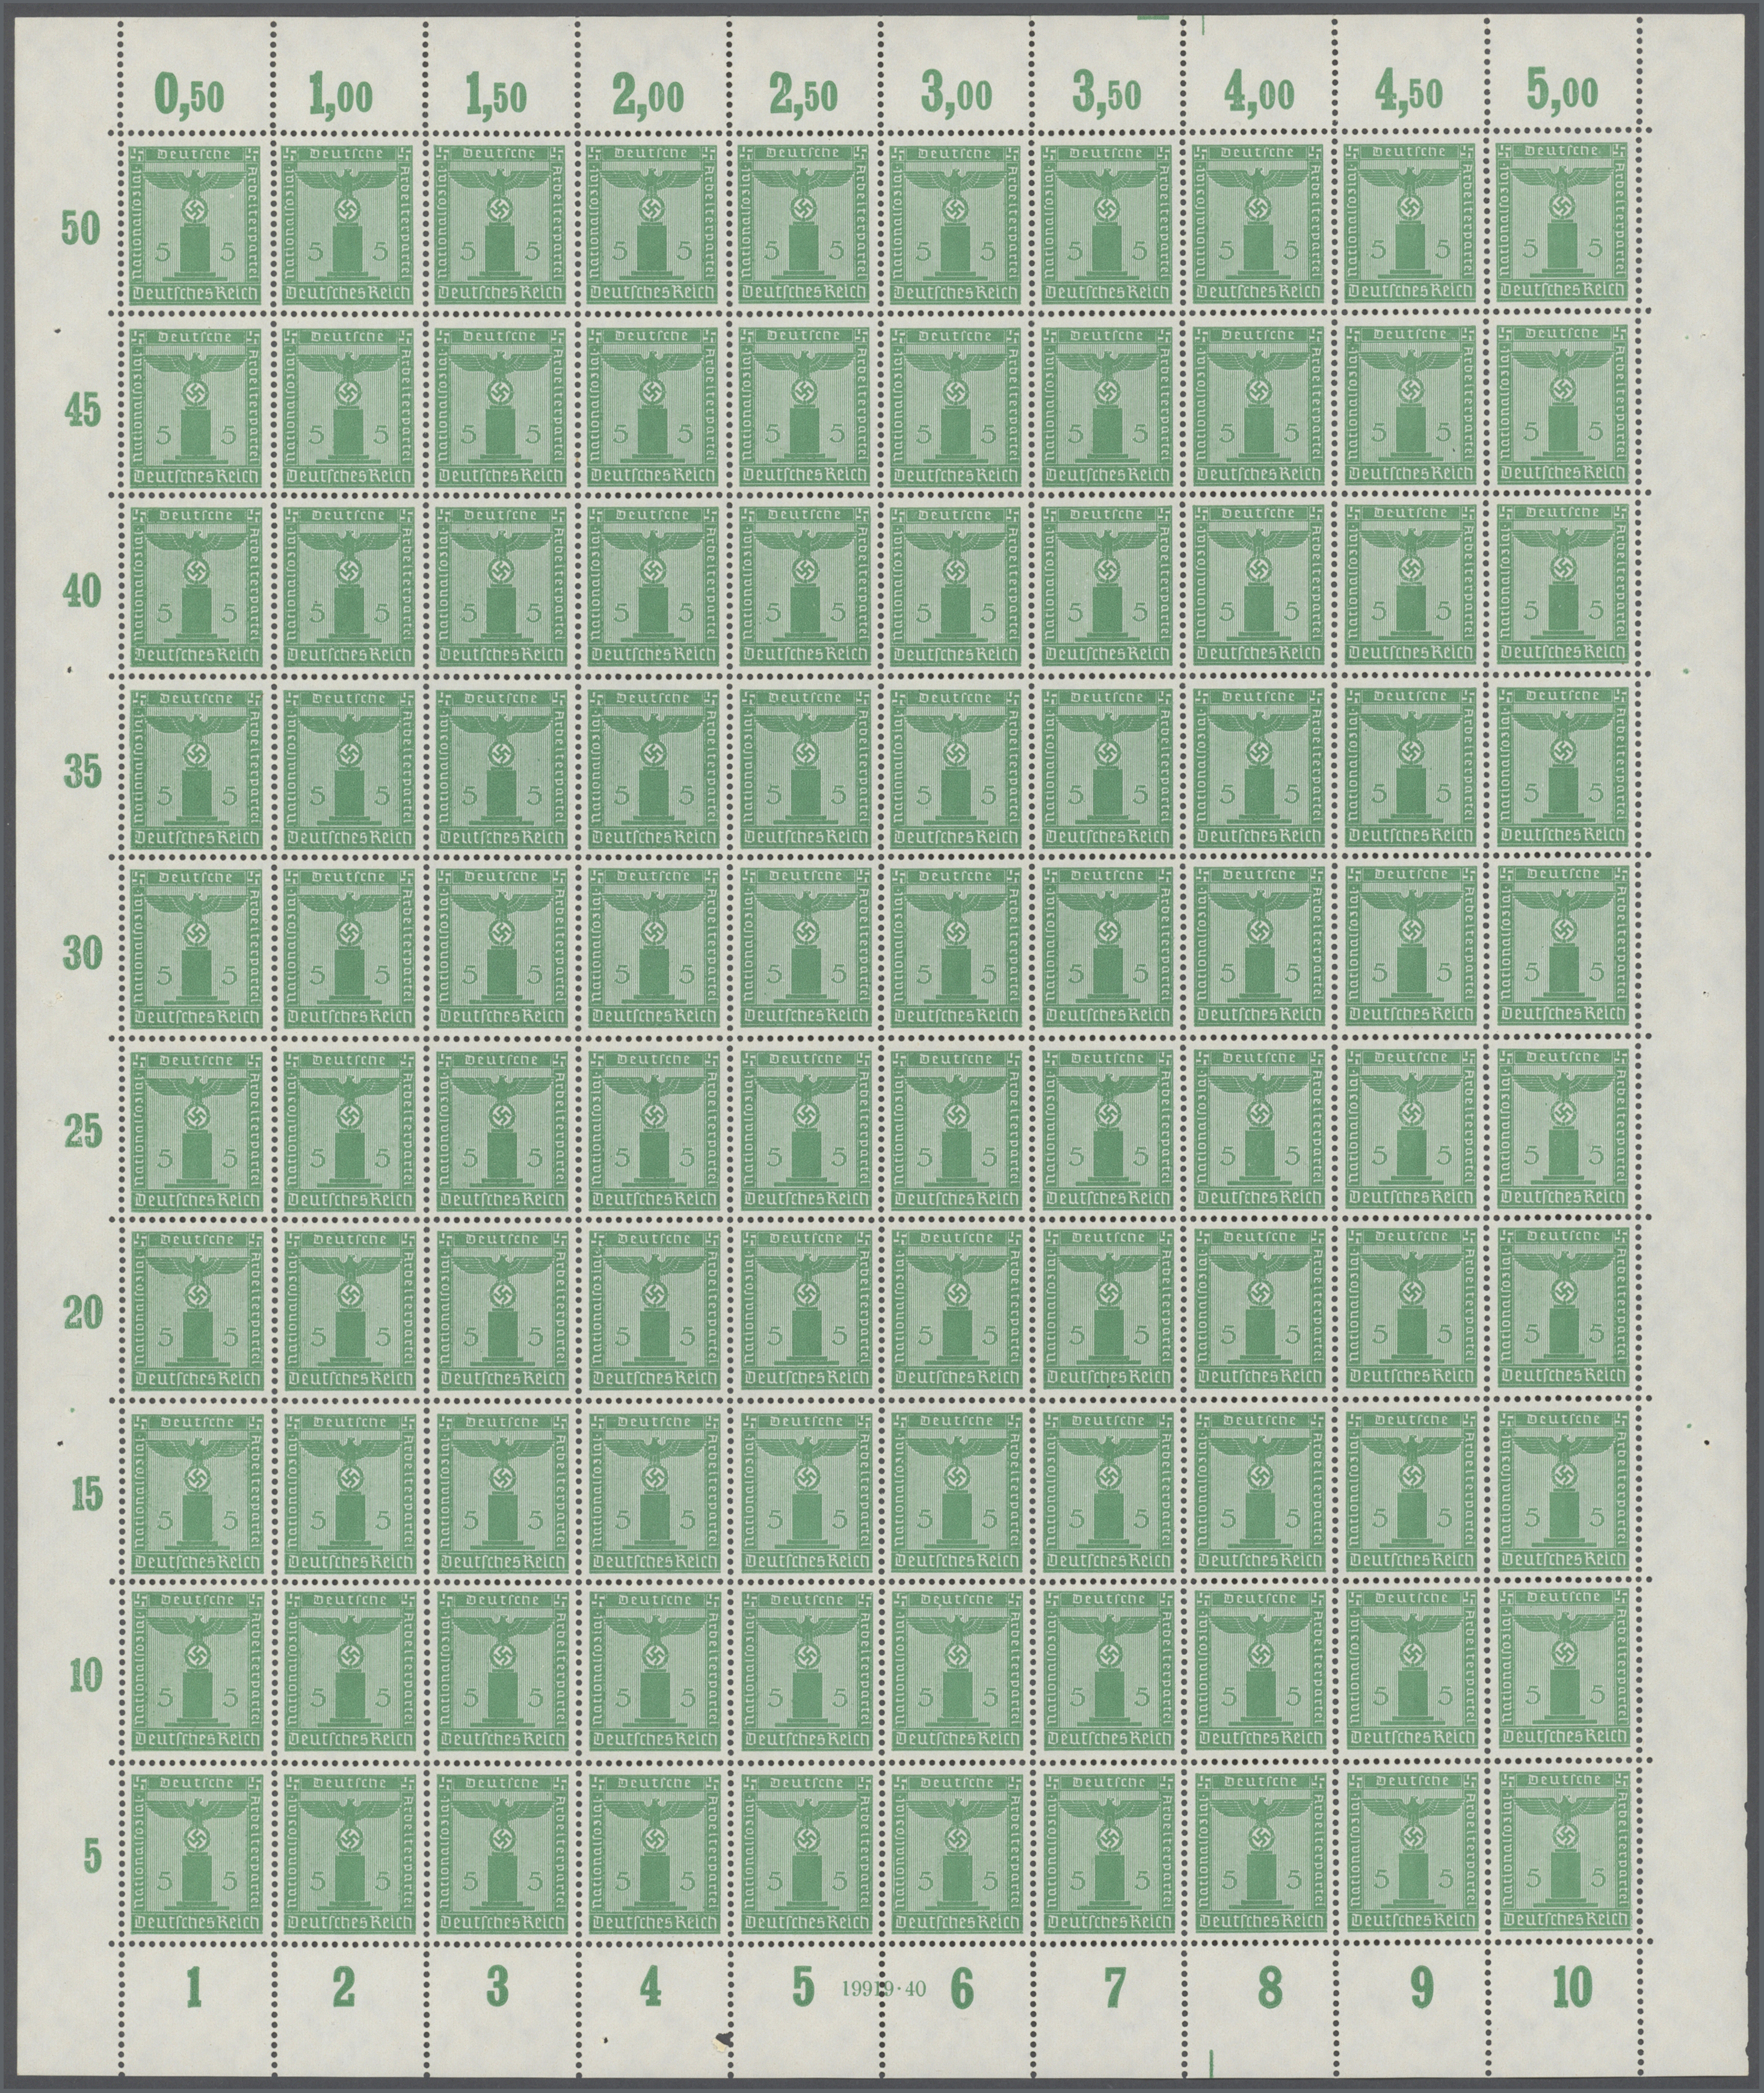 Lot 37063 - Deutsches Reich - Dienstmarken  -  Auktionshaus Christoph Gärtner GmbH & Co. KG Collections Germany,  Collections Supplement, Surprise boxes #39 Day 7